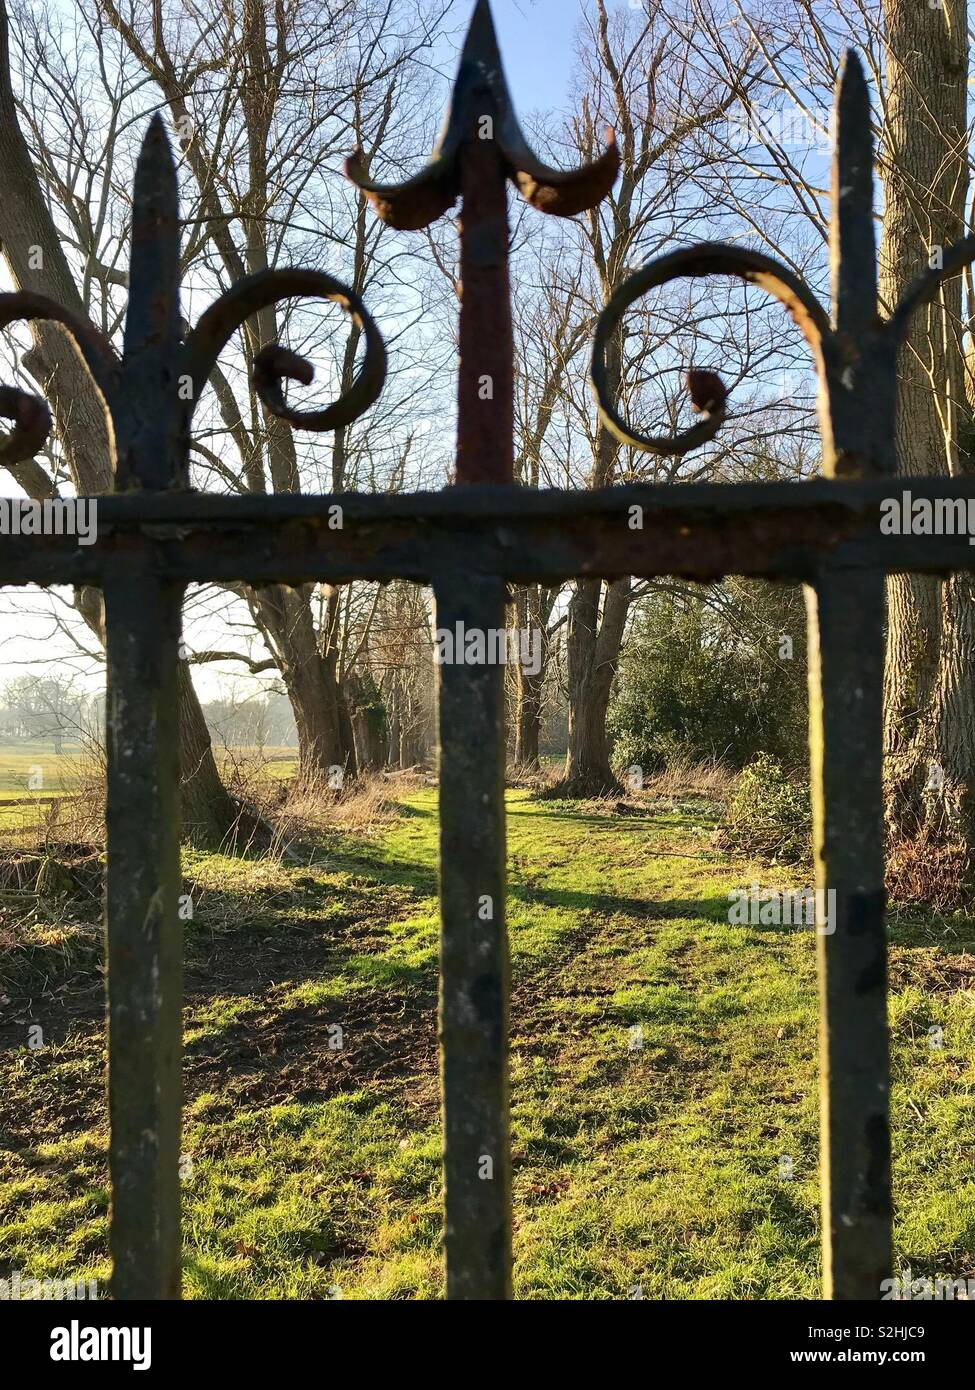 Cast iron railings in an historic parkland. - Stock Image